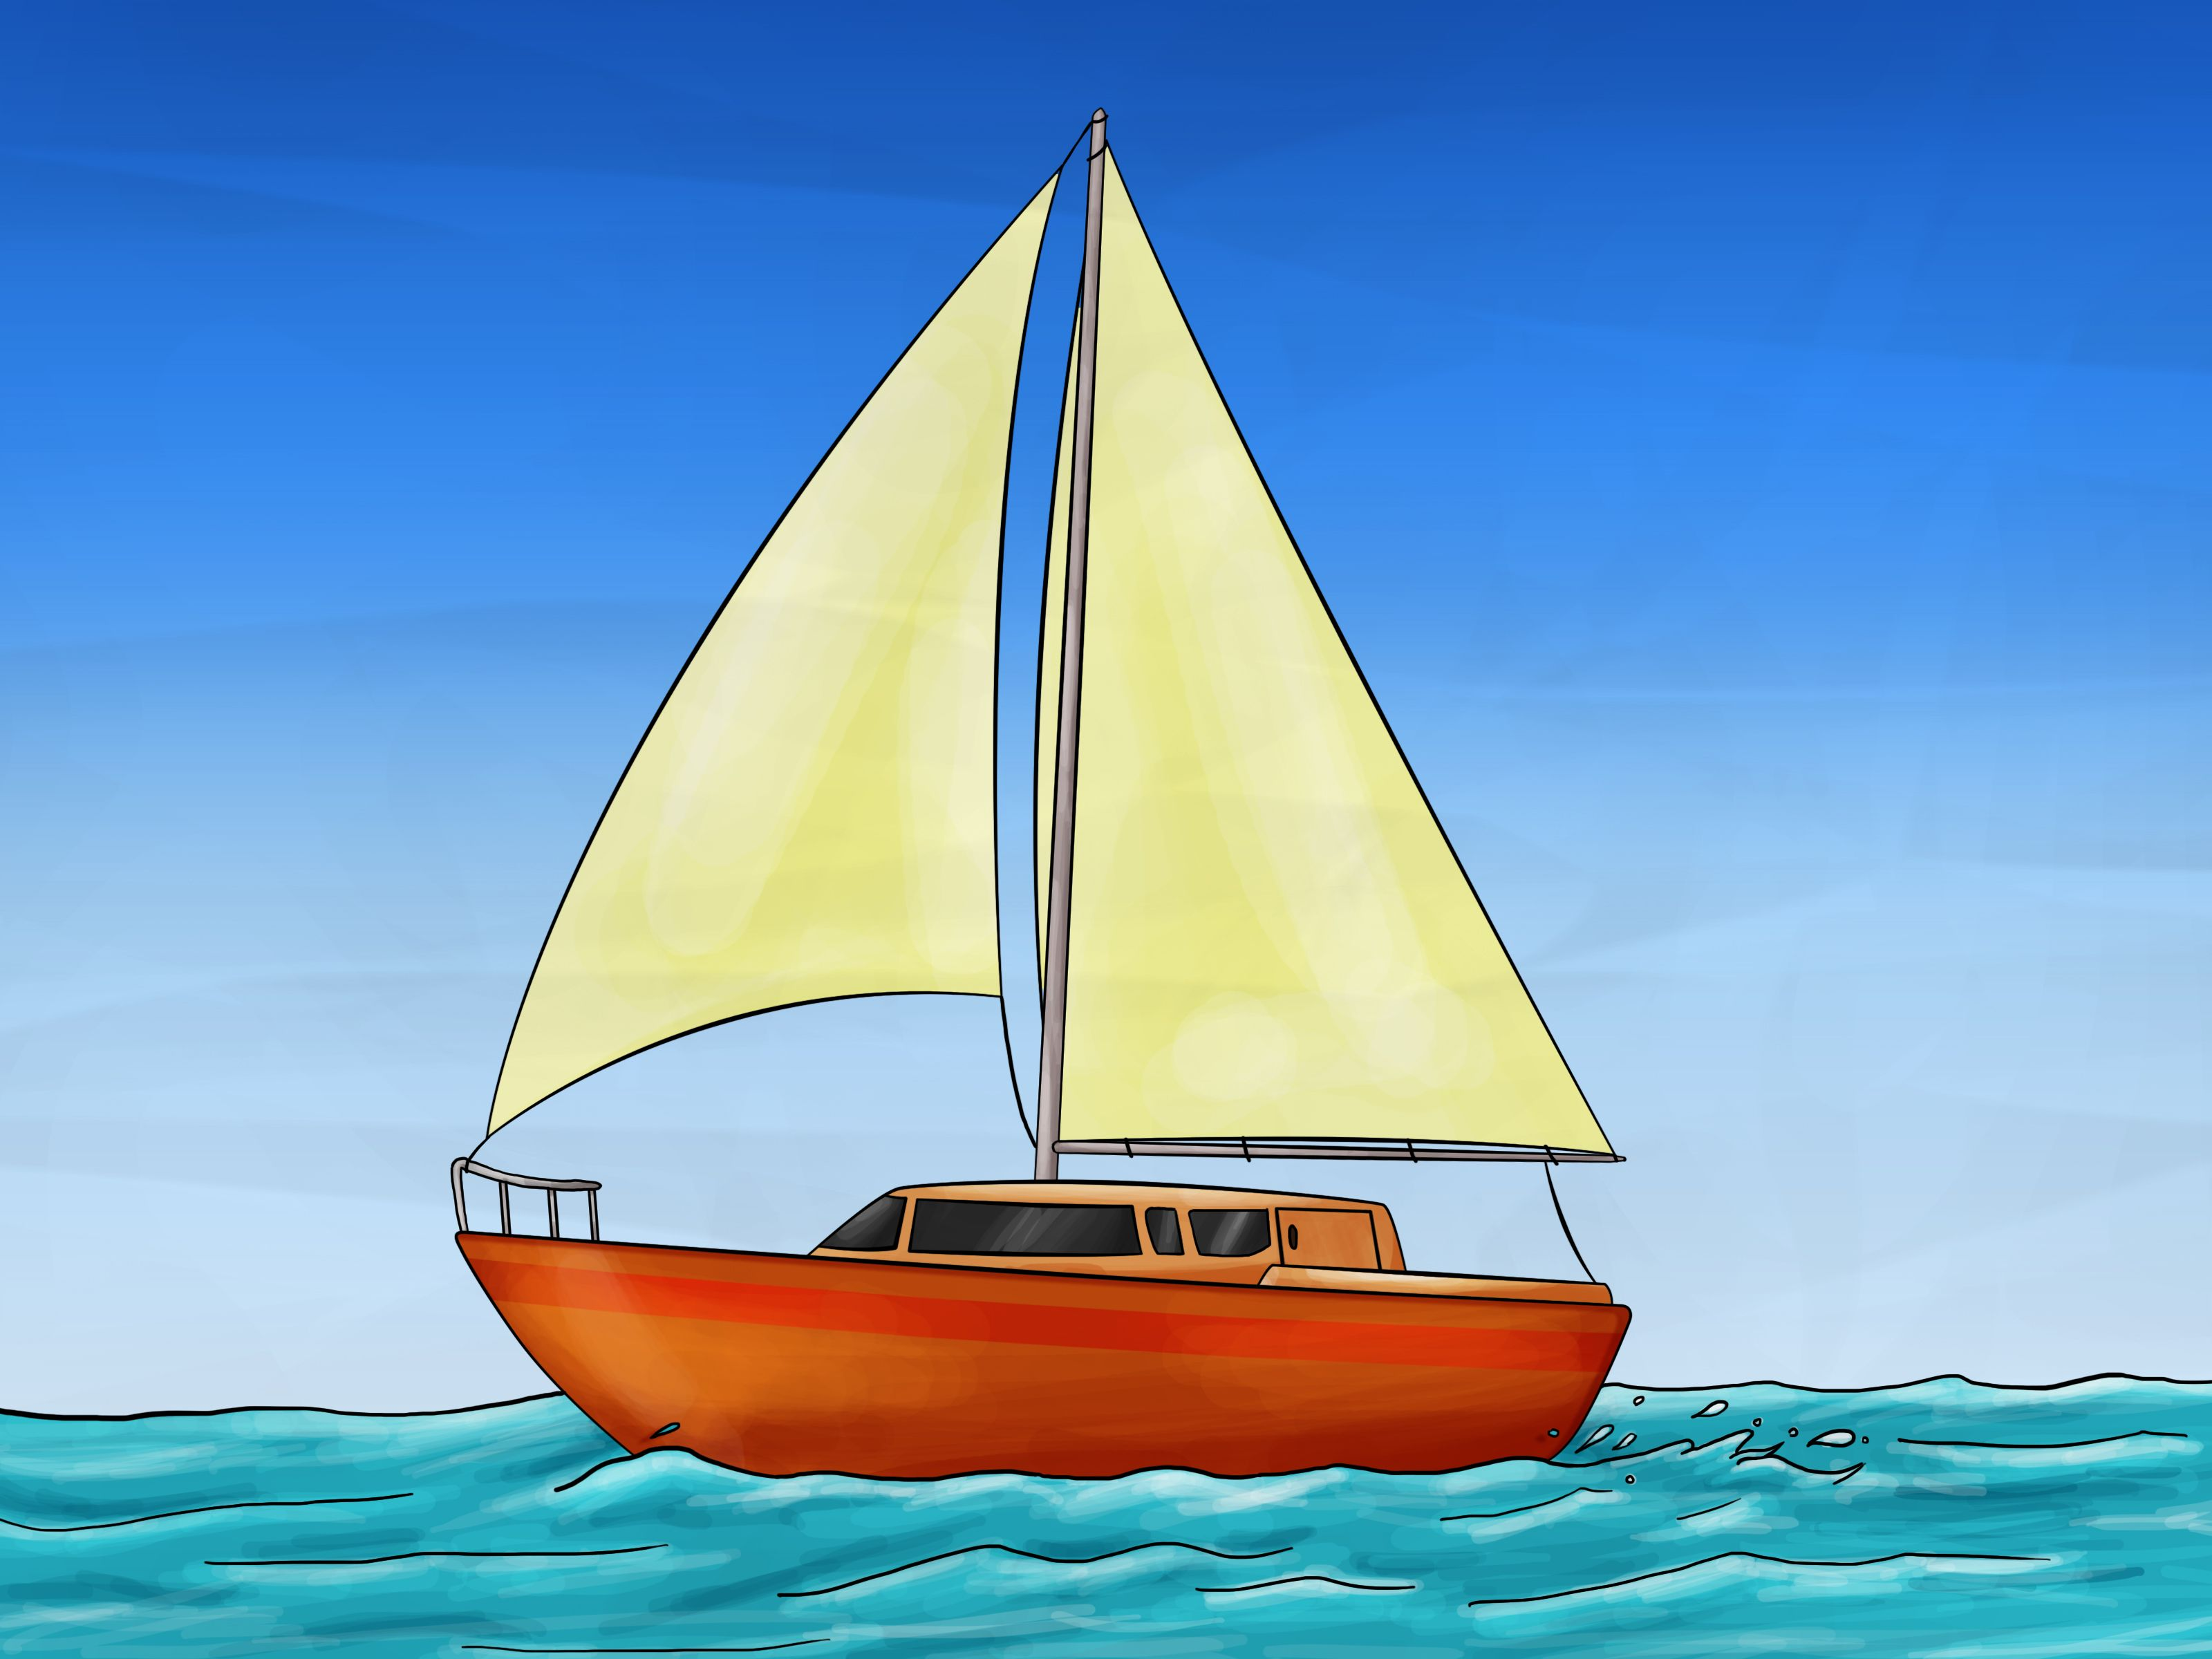 How to Draw a Sailboat: 7 Steps